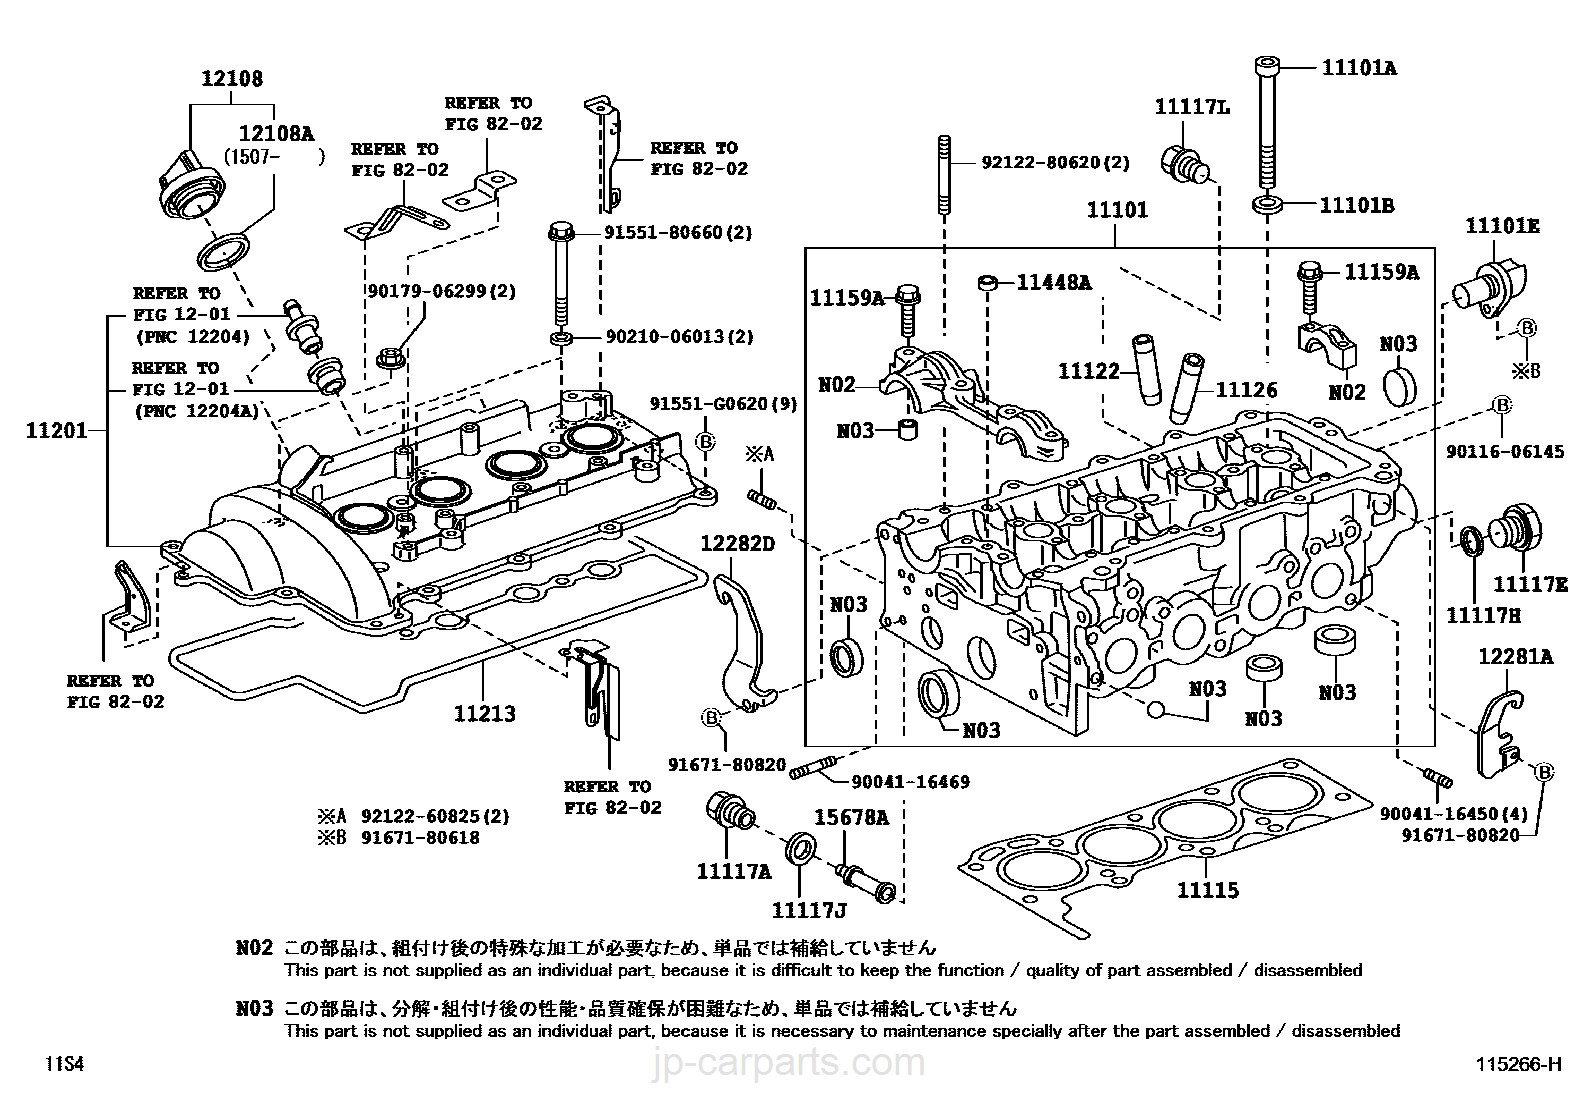 Kp Gasket Daihatsu Gran Max Full Set Wiring Diagram Ayla 3sz Ve Engine Is Originally Use In Toyota Lite And Townace The Exhaust Manifold Seem Also Very Similar To Yrv Turbo Type Under